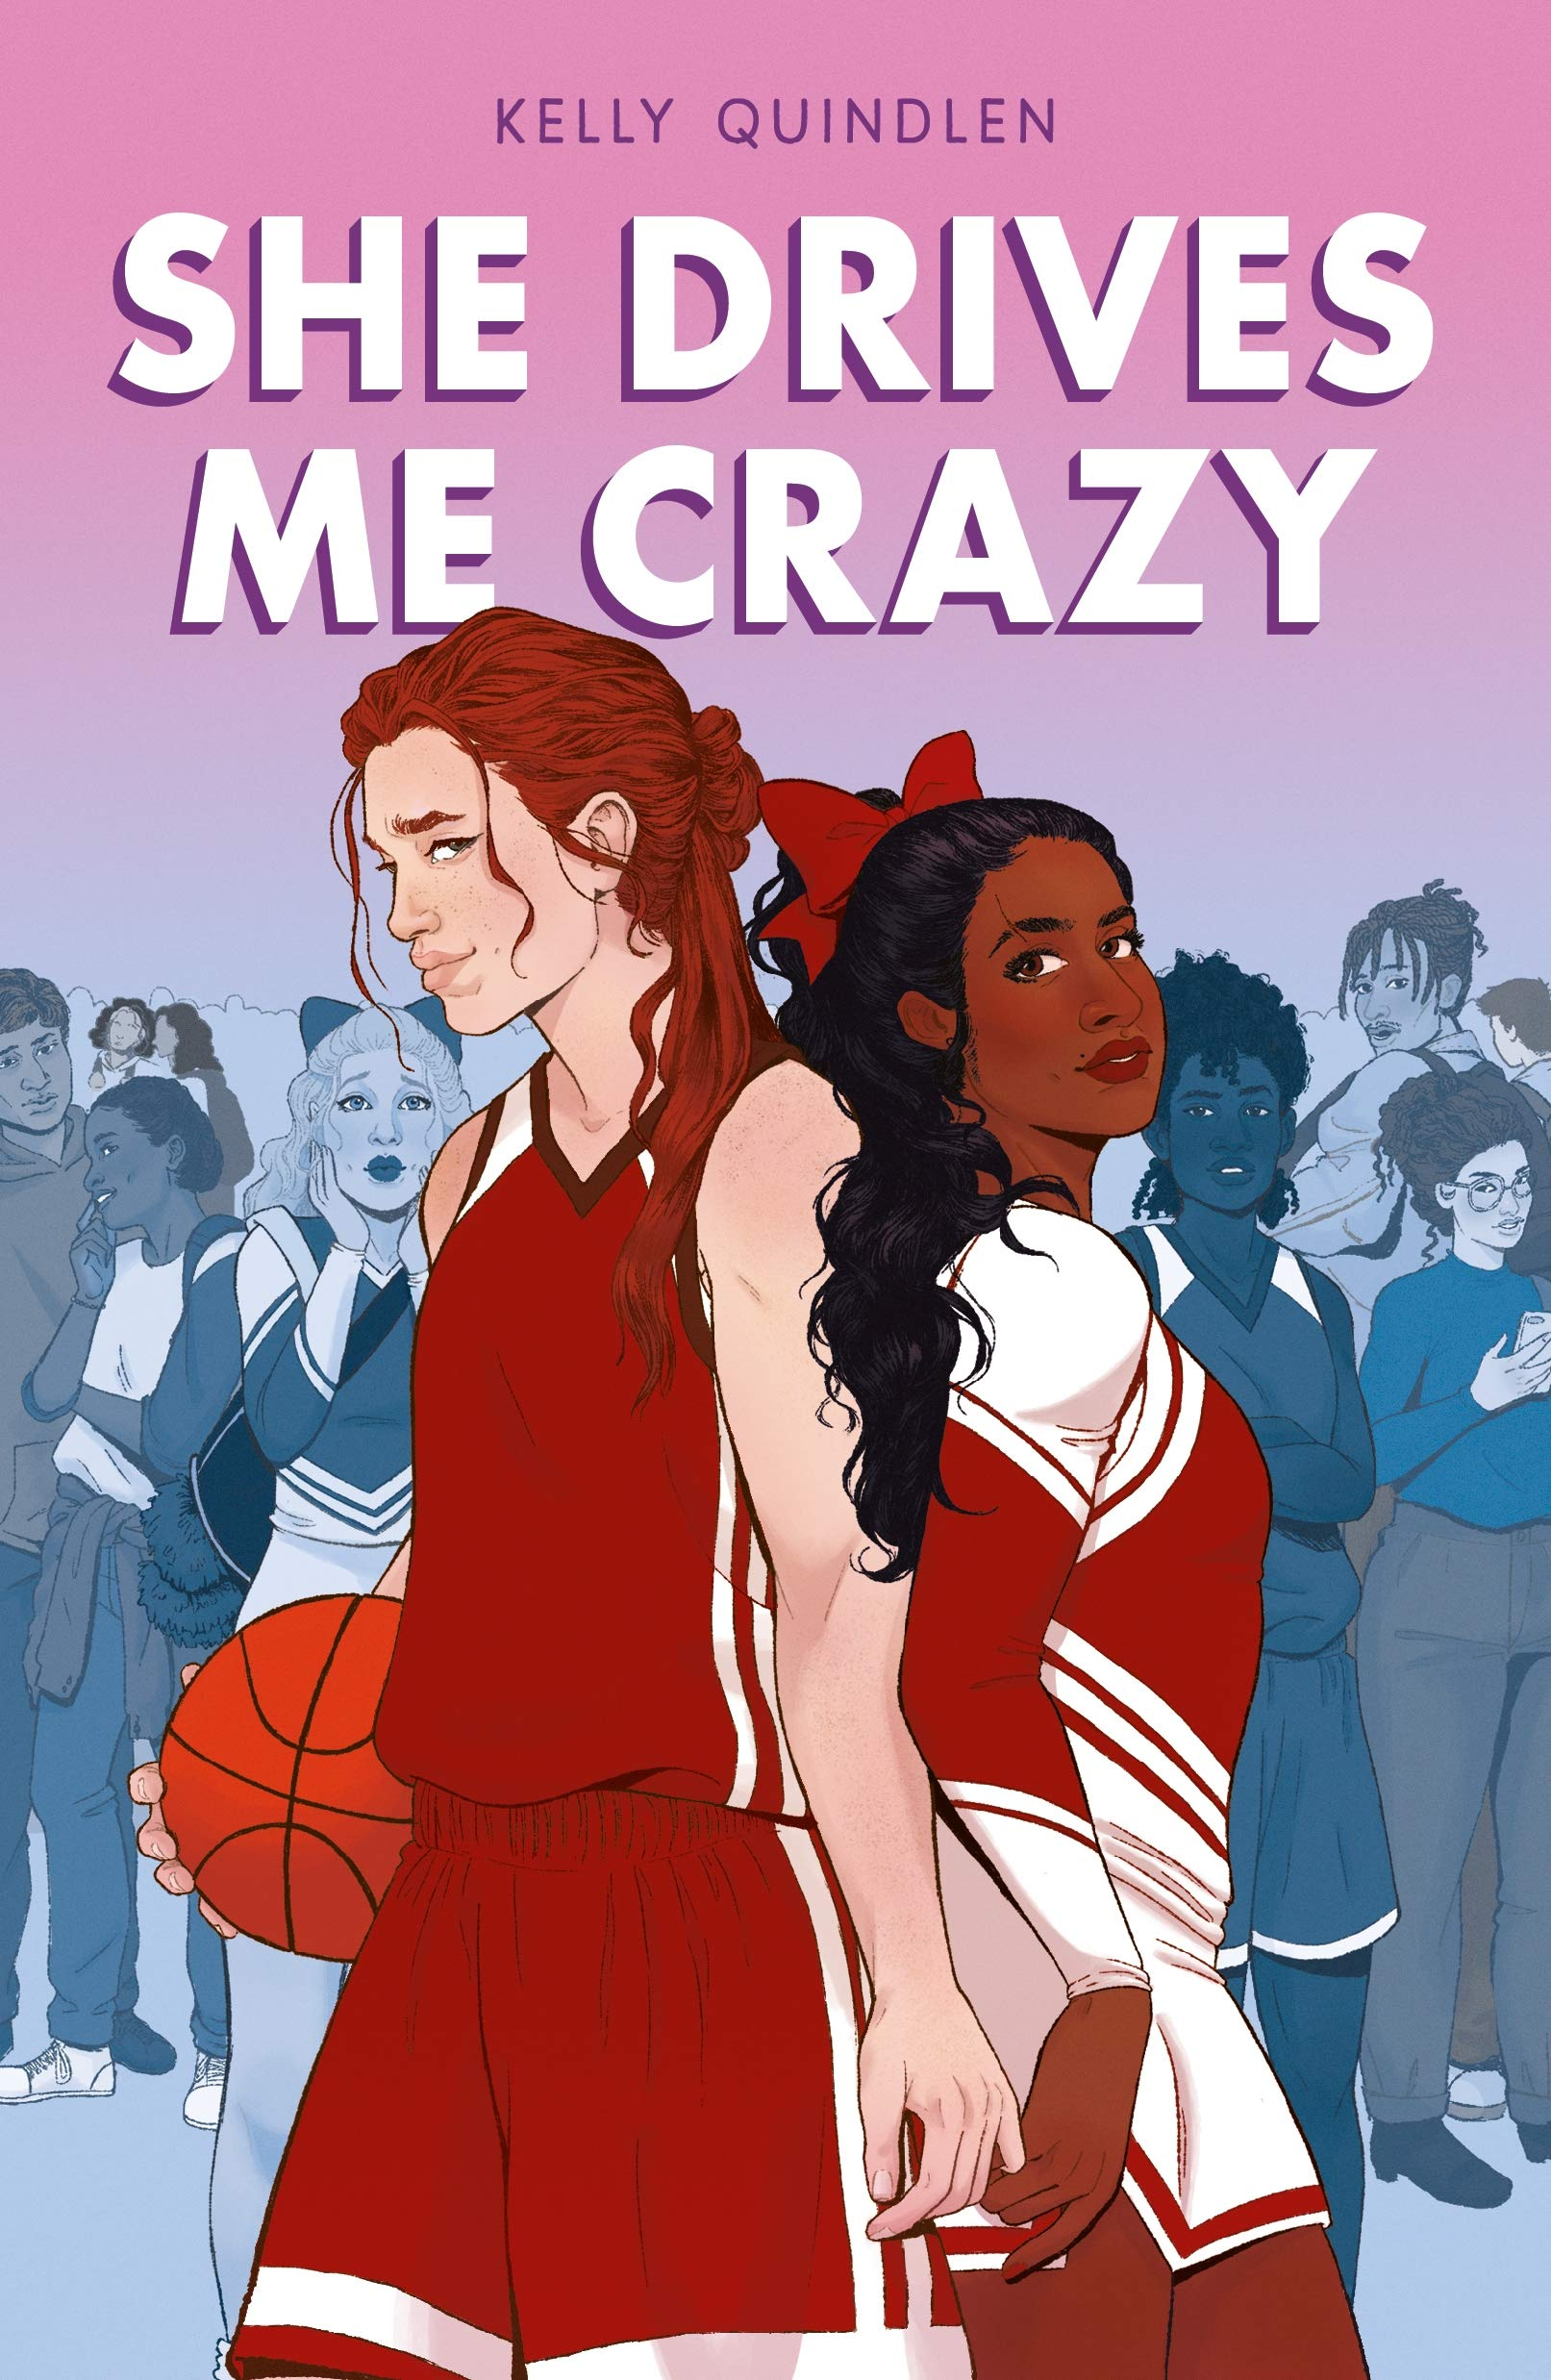 Amazon.com: She Drives Me Crazy (9781250209153): Quindlen, Kelly: Books